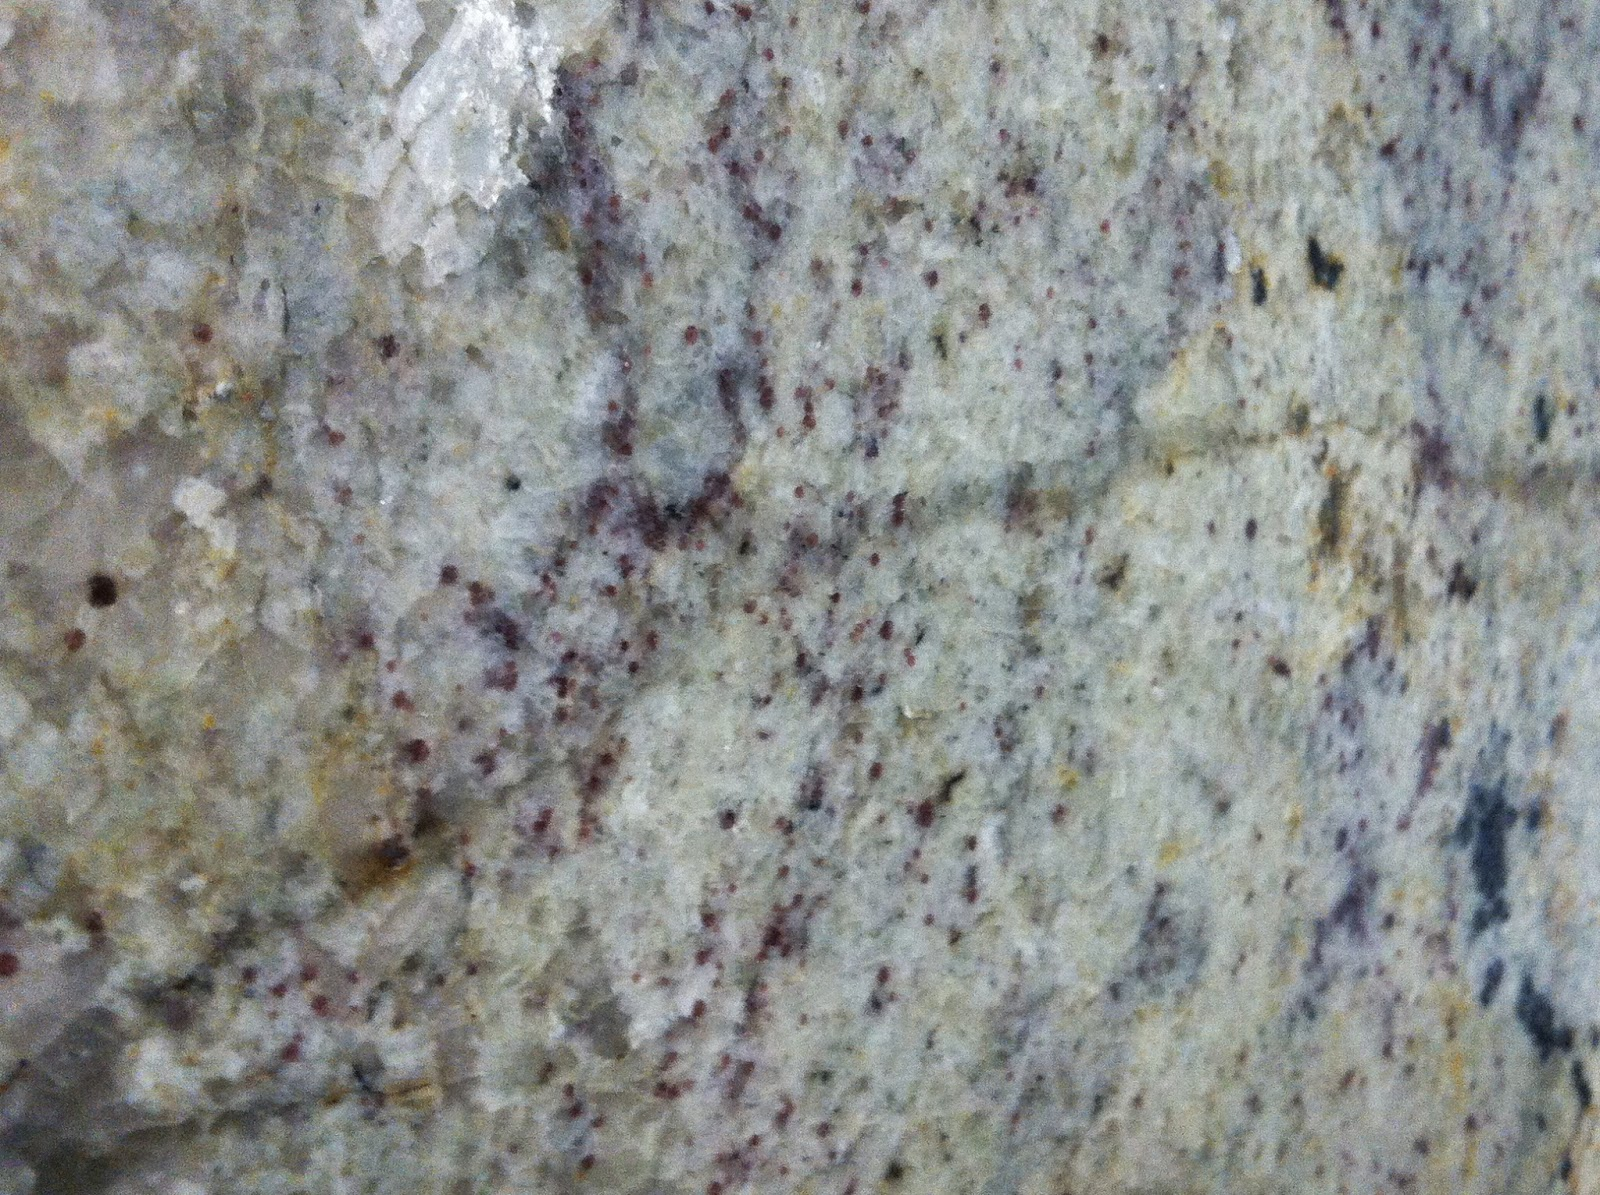 How To Repair Crack In Granite Countertop Natural Stone Source Fissures In Granite Countertops